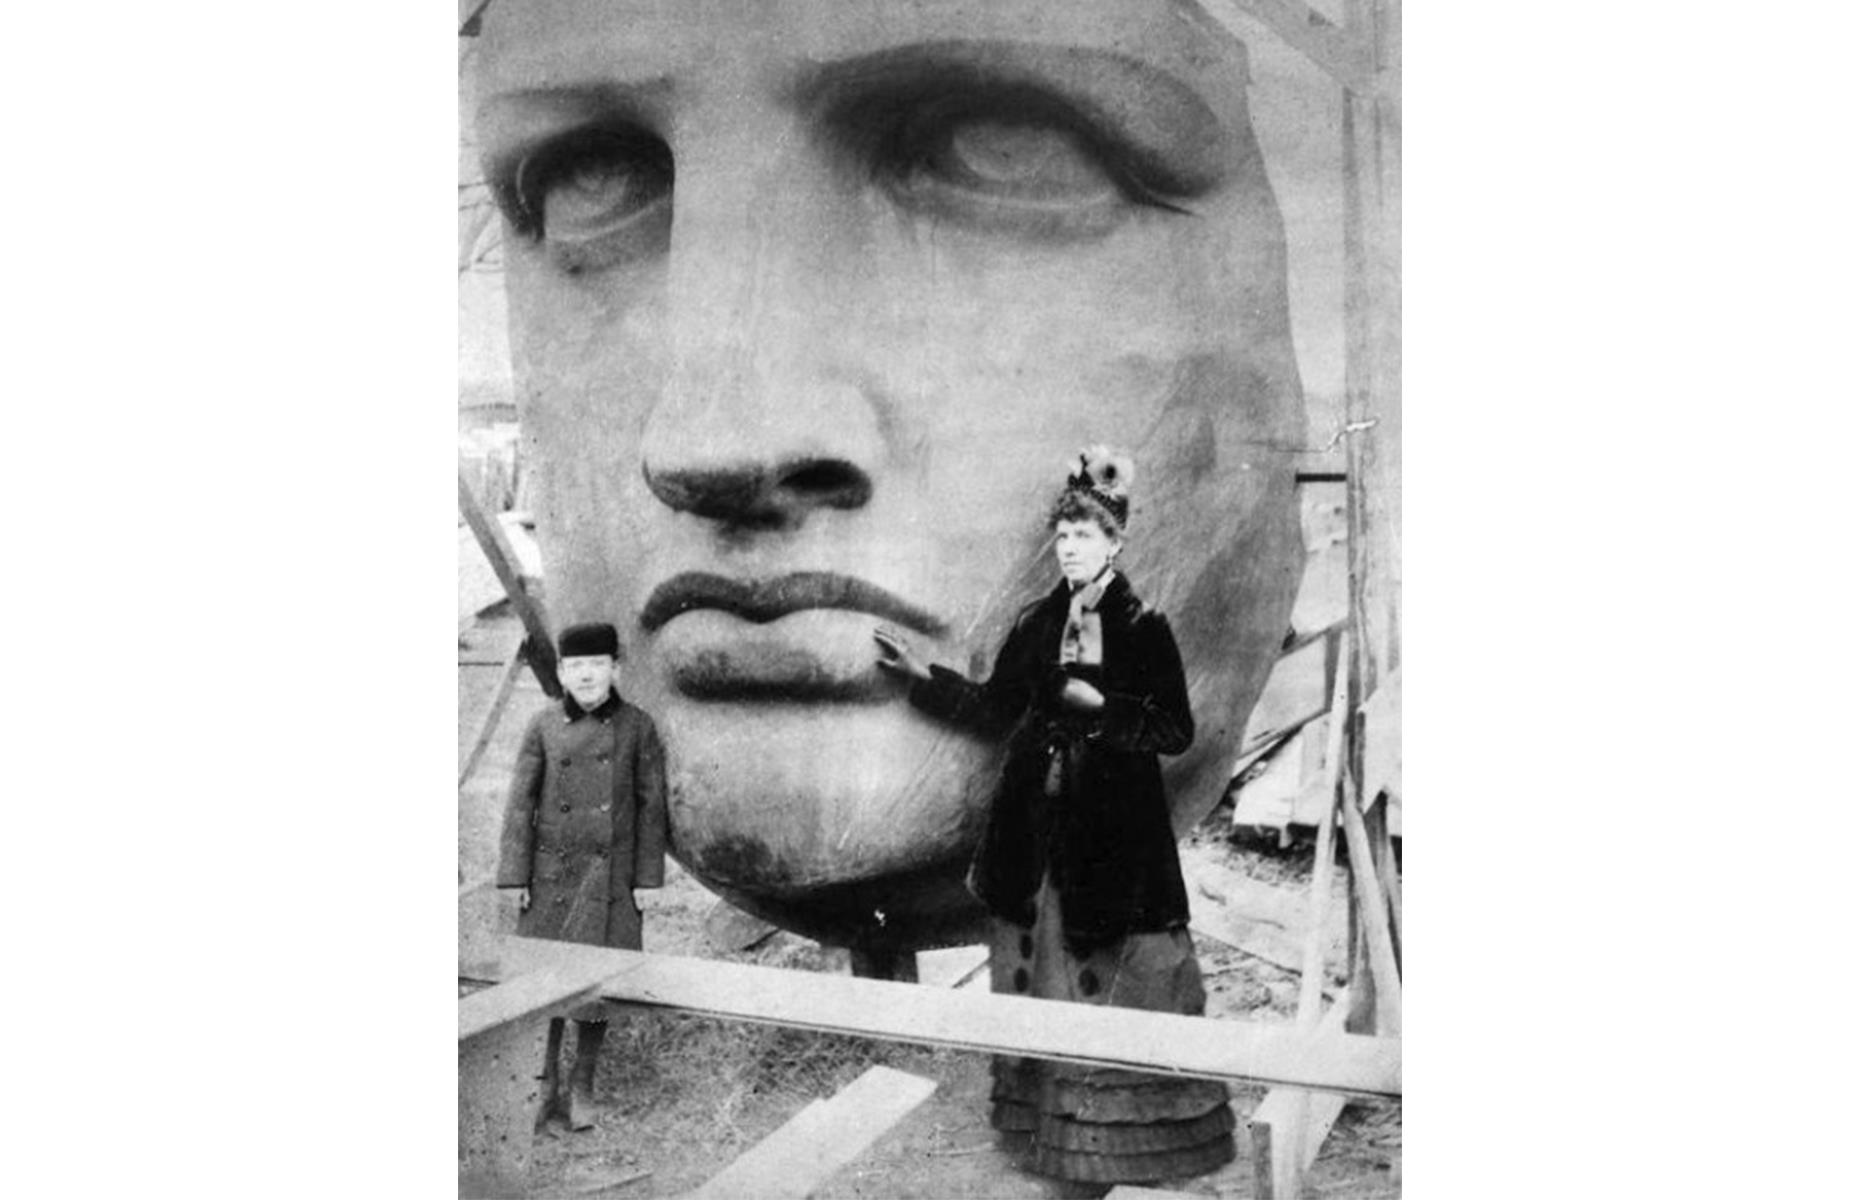 Slide 19 of 41: The official pedestal was designed and built on American soil by architect Richard Morris Hunt, and finished in 1886. Lady Liberty herself arrived at New York Harbor one year before, in 1885, ready to be assembled on her shiny new plinth. Her face is pictured here in June 1885, as she was unpacked from around 214 crates. She was finally dedicated in October 1886. See more vintage images of America's most historic attractions.